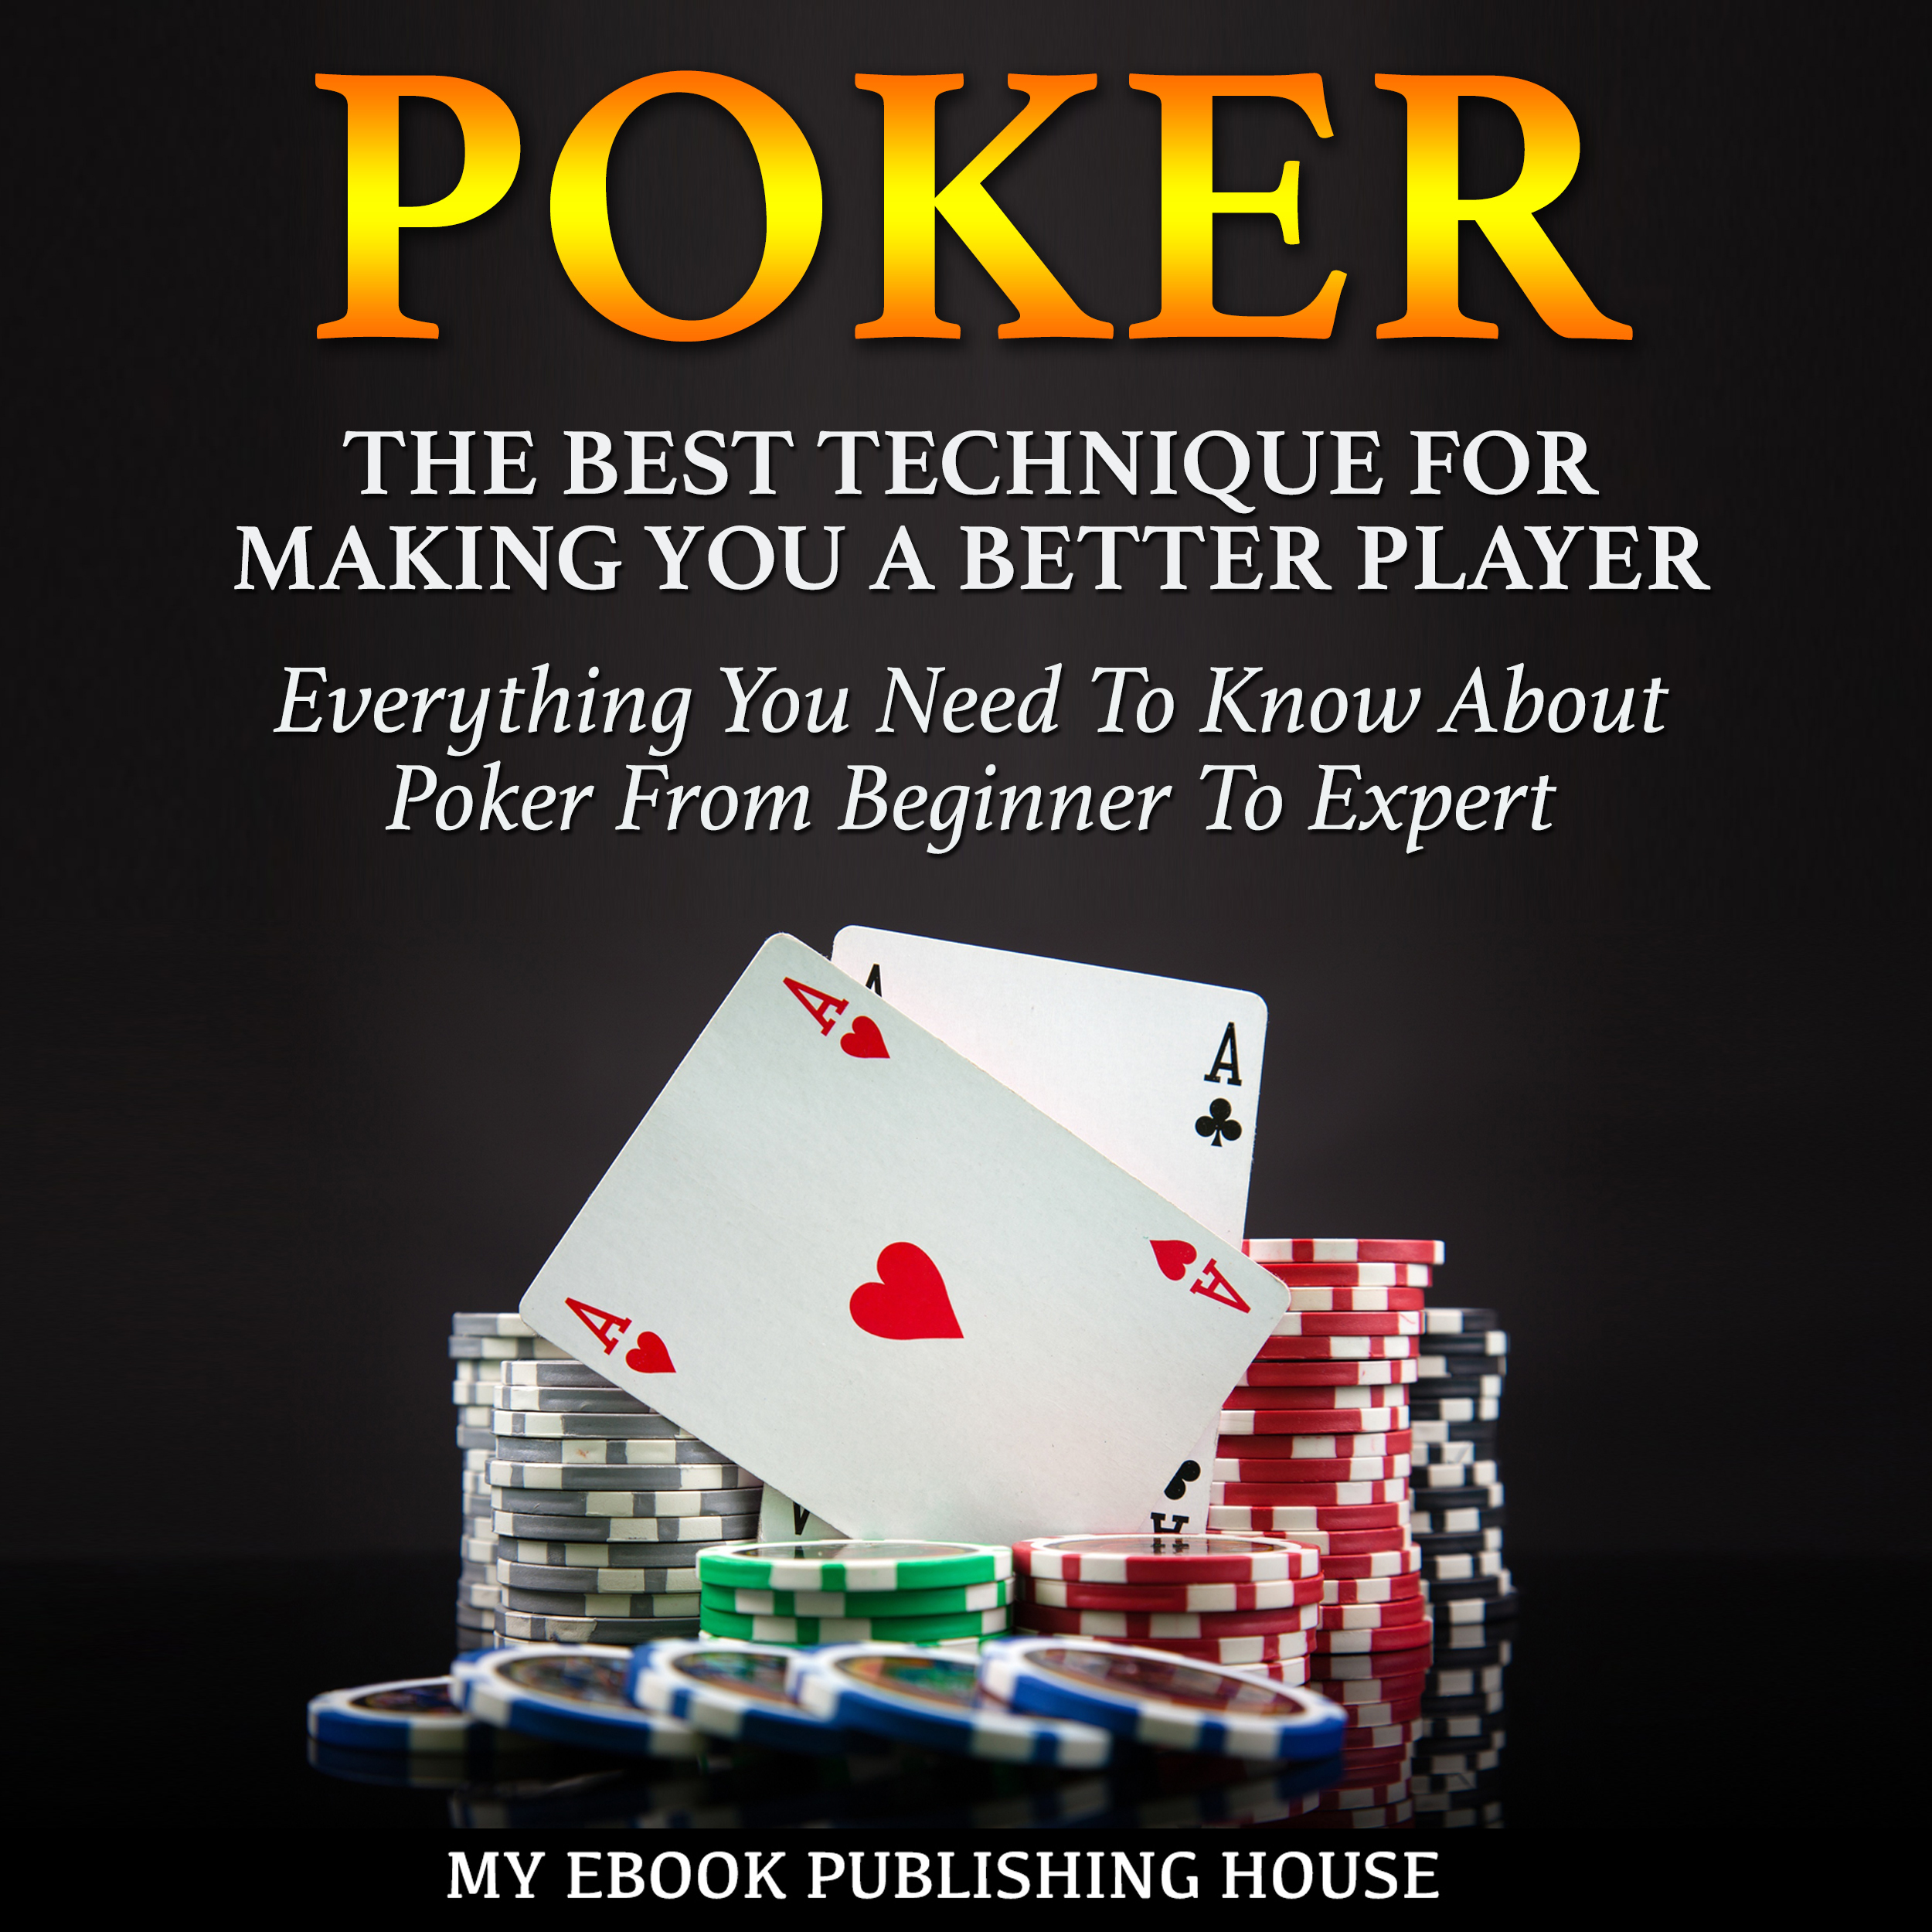 Printable Poker: The Best Techniques For Making You A Better Player. Everything You Need To Know About Poker From Beginner To Expert Audiobook Cover Art